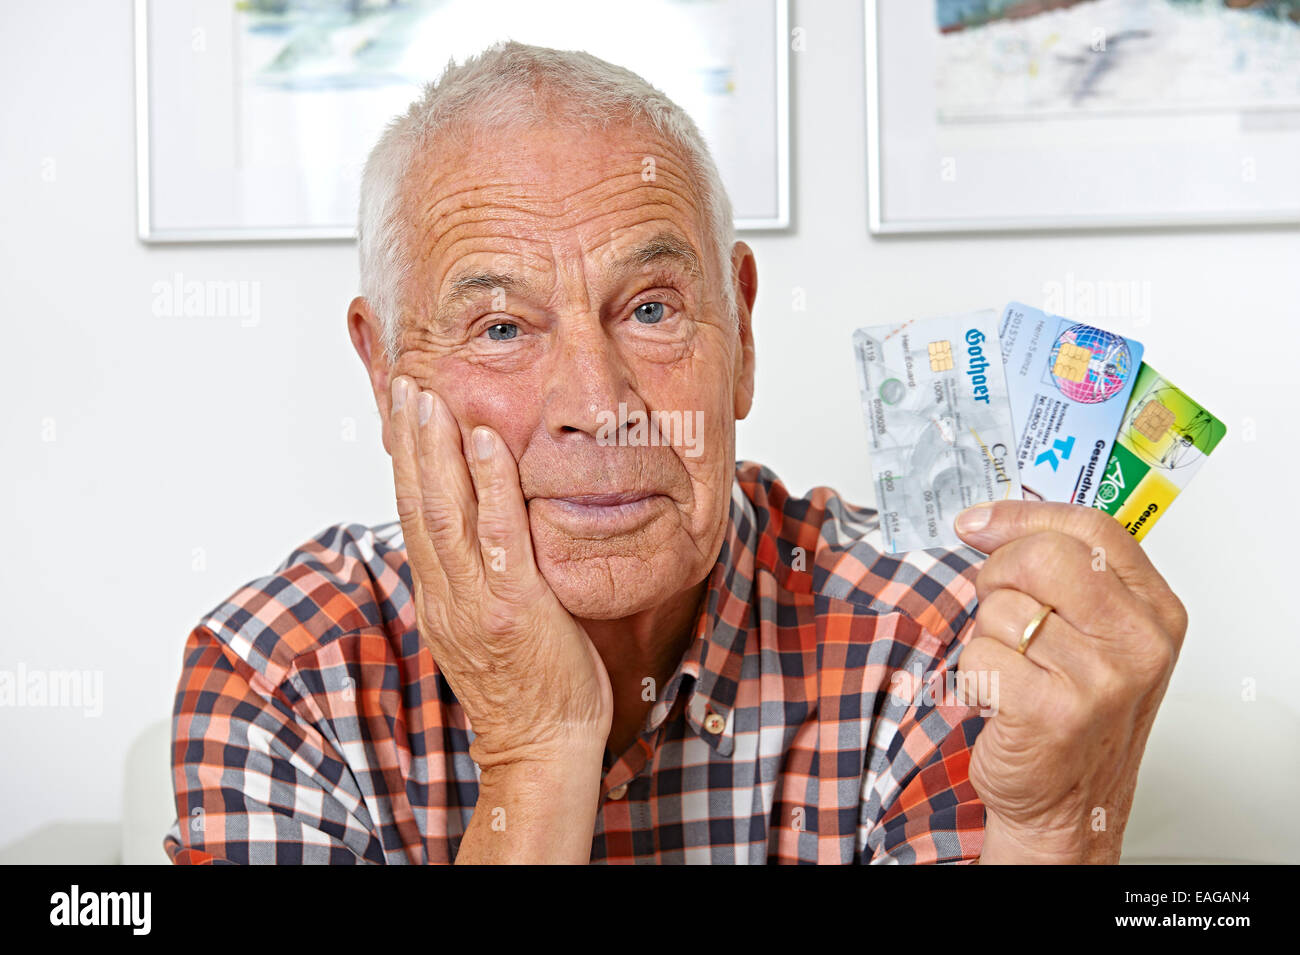 Senior with health insurance cards - Stock Image